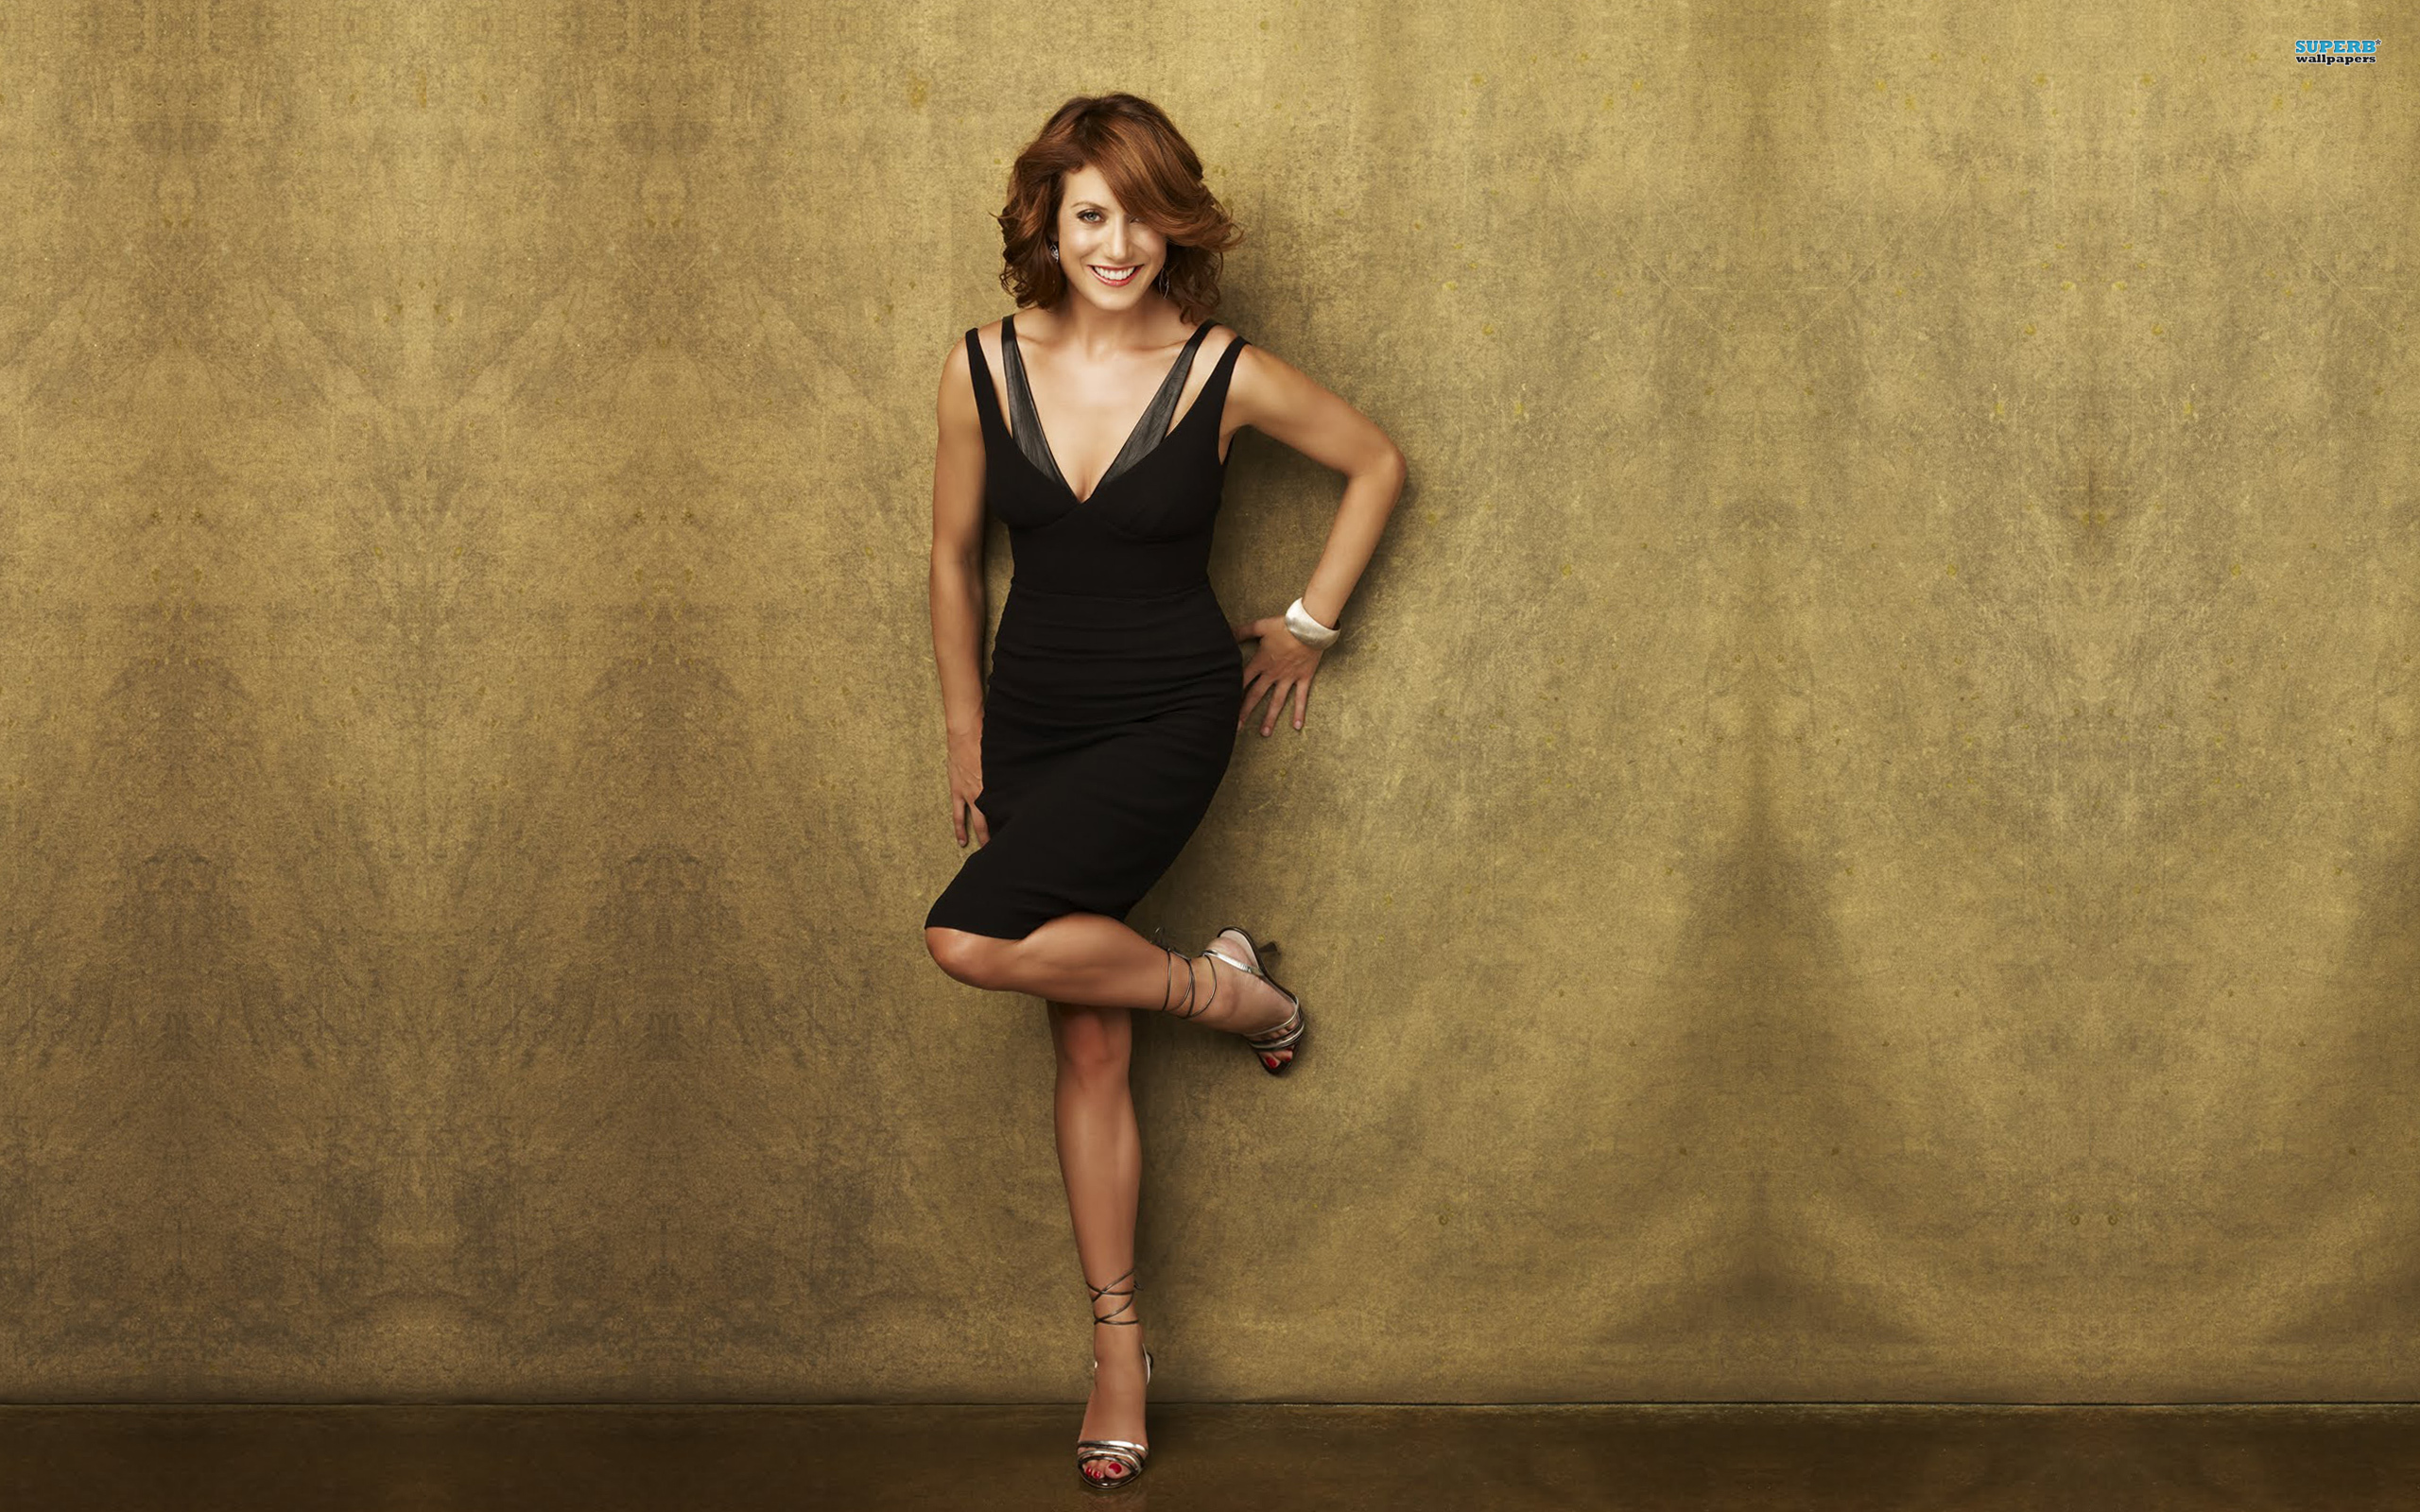 2560x1600 - Kate Walsh Wallpapers 4